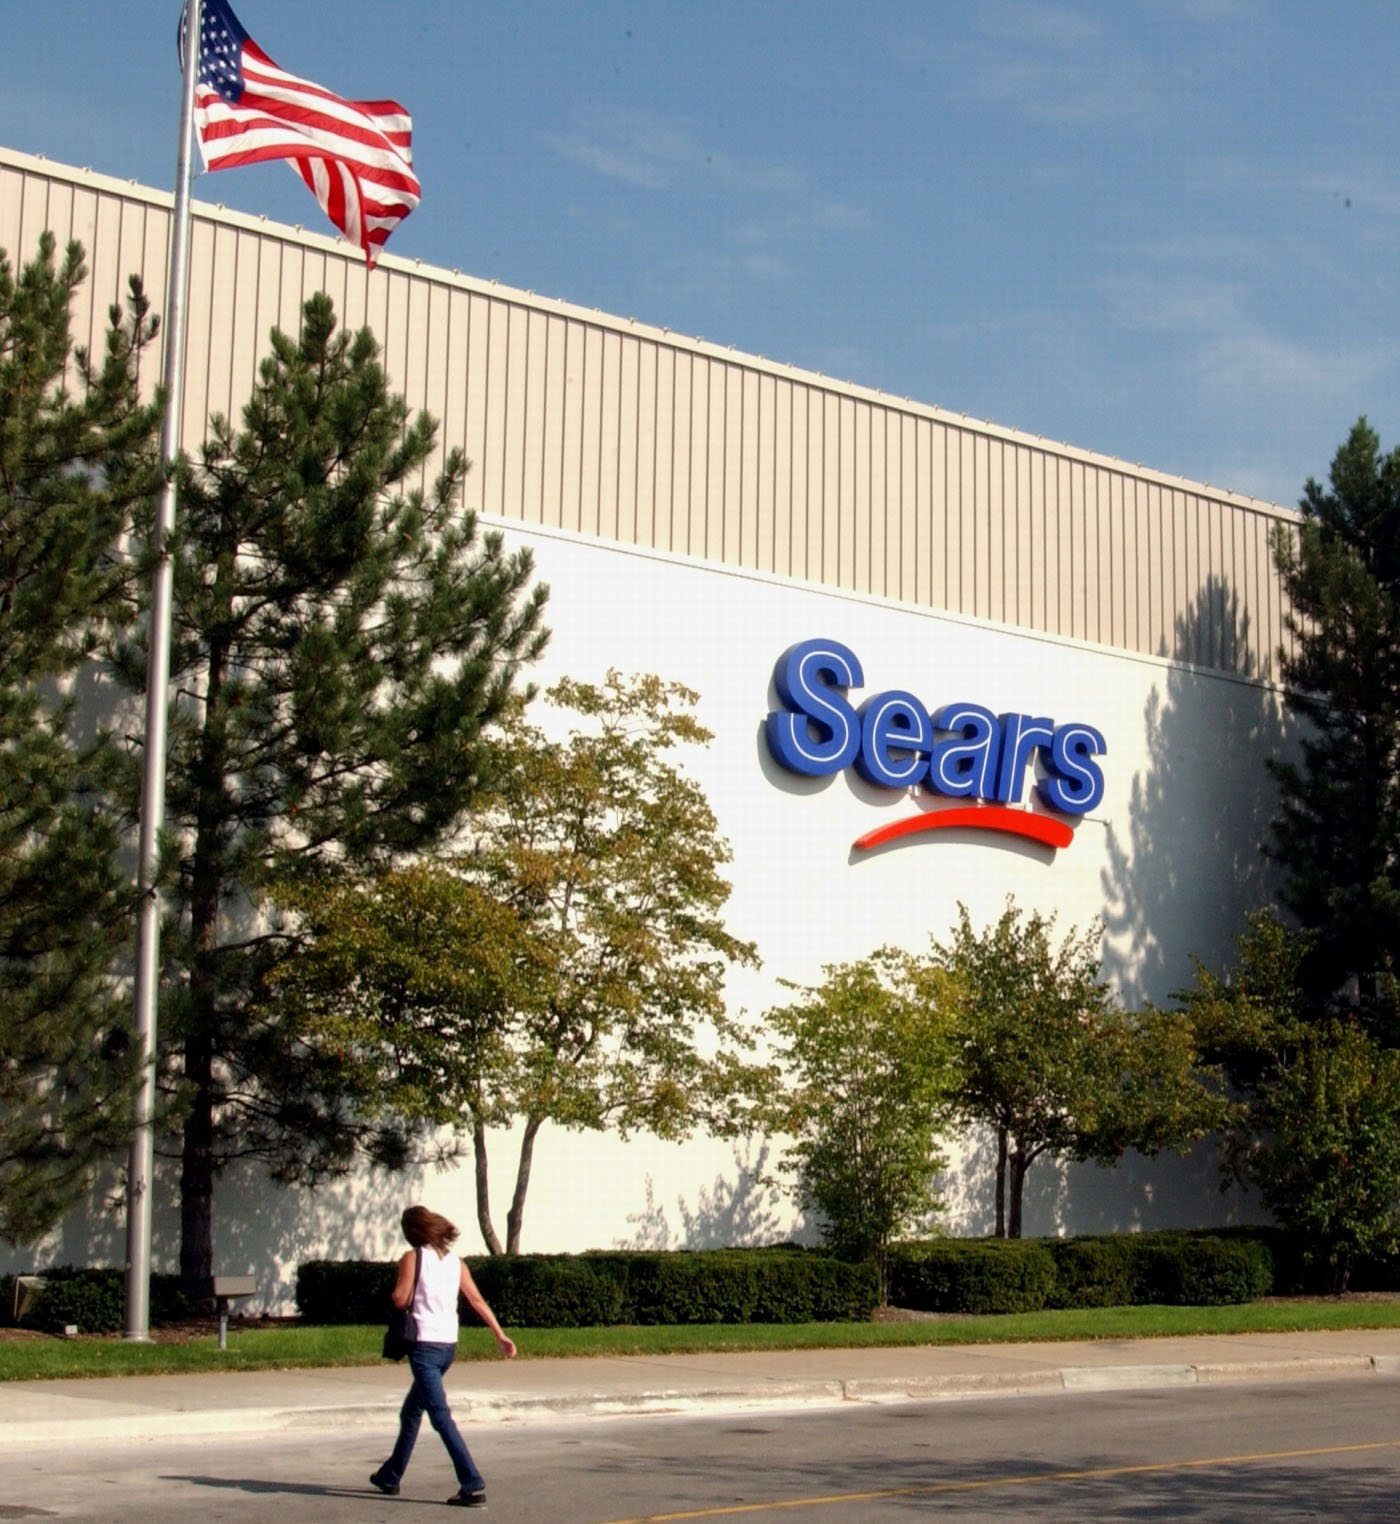 sears-exterior-american-flag